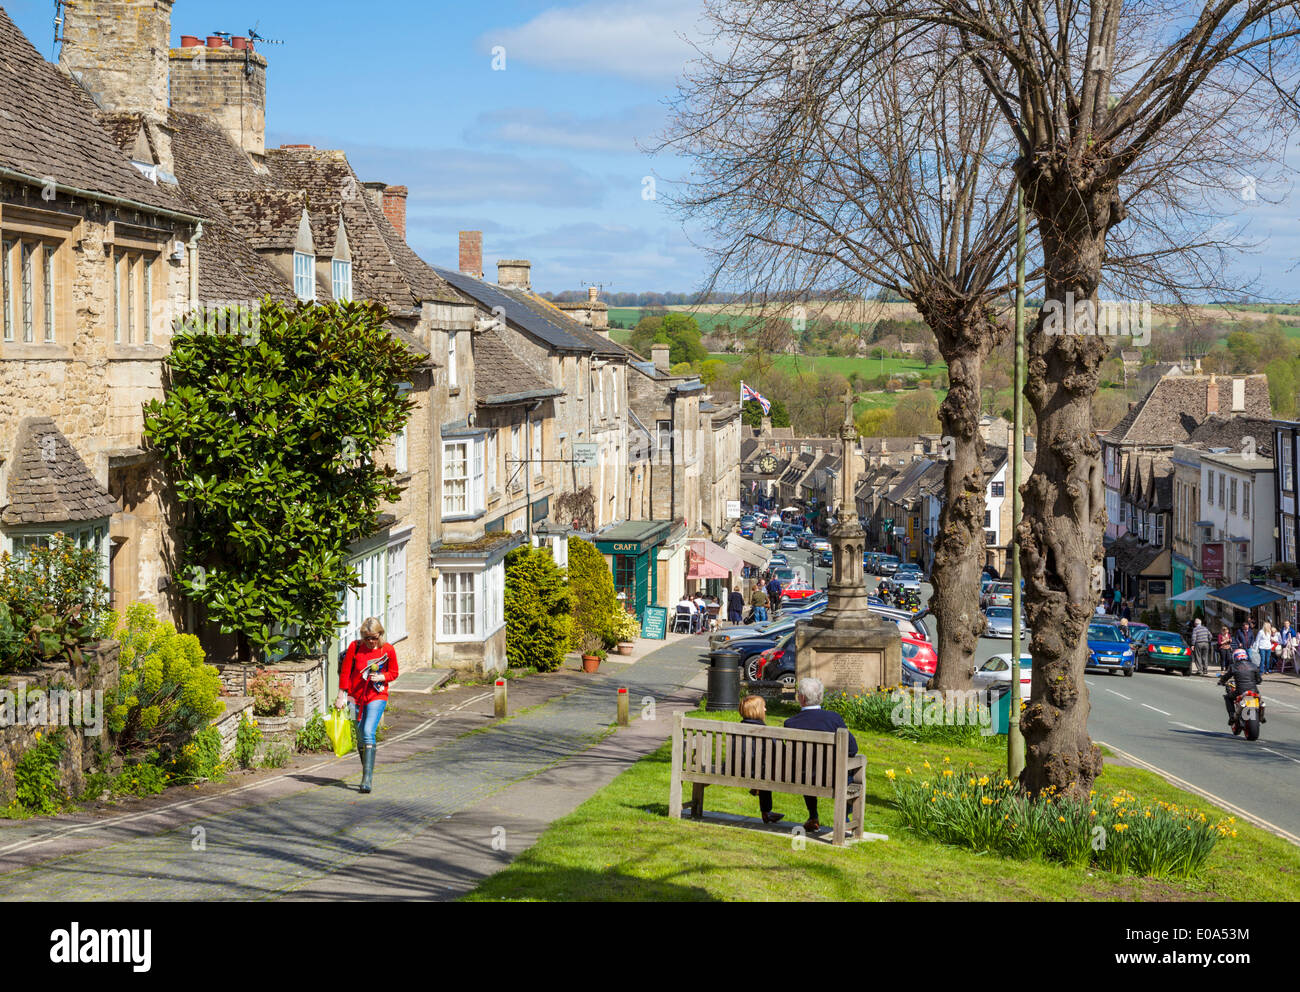 High Street Burford Cotswolds Oxfordshire England UK EU Europe - Stock Image